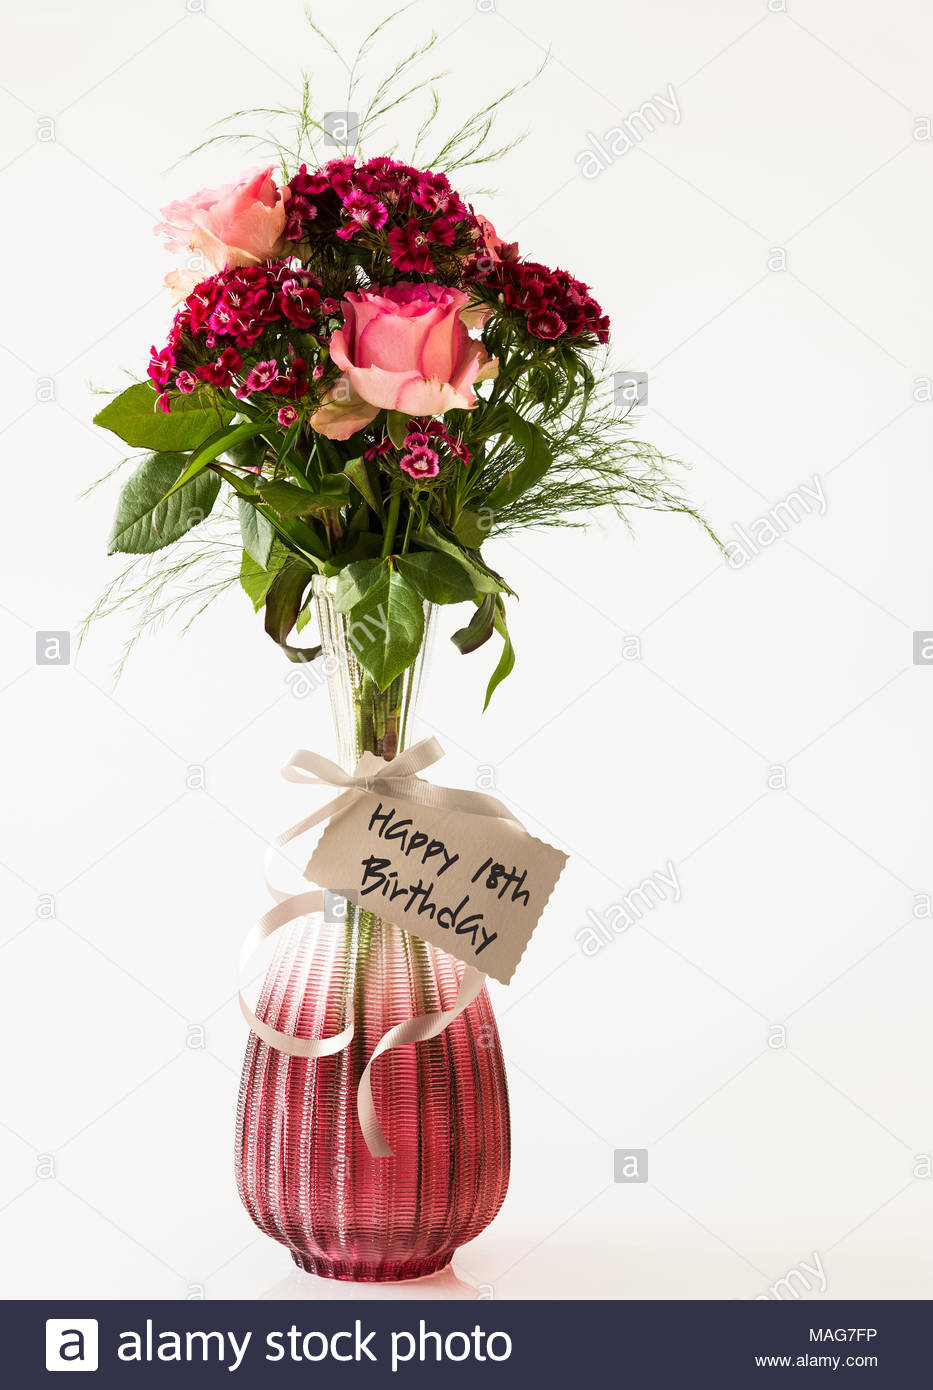 Flowers In An Elegant Vase With The Wording Happy 18th Birthday On The Gift Tag Dorset England Uk Stock Photo Alamy